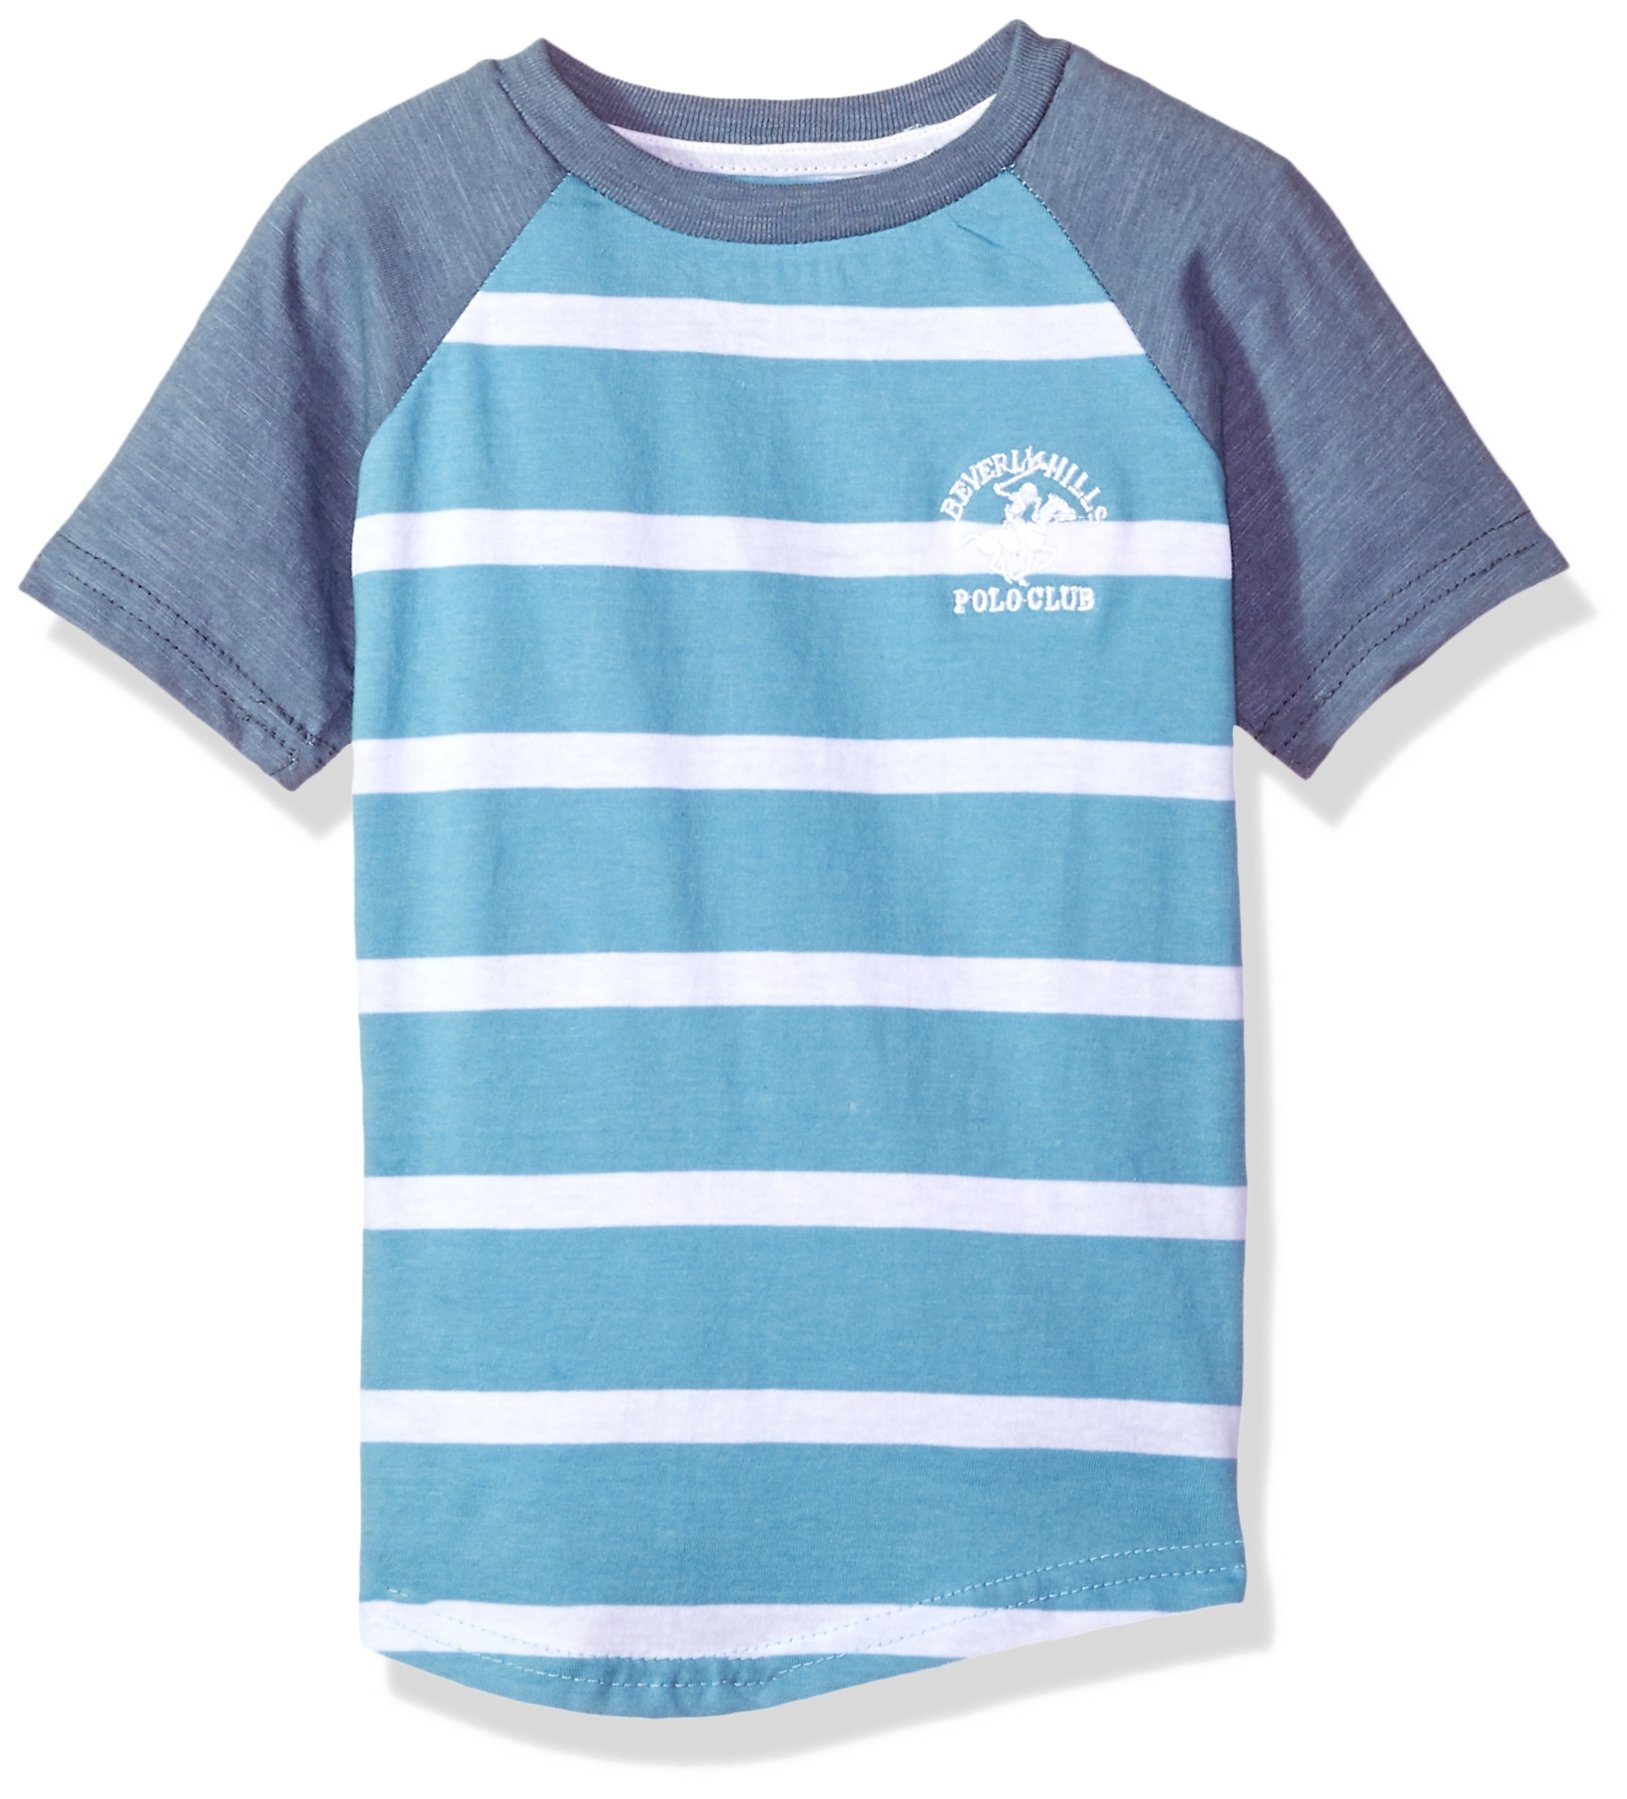 Beverly Hills Polo Club Boys' Toddler Short Sleeve Stripe Tee, Ethereal Blue, 2T